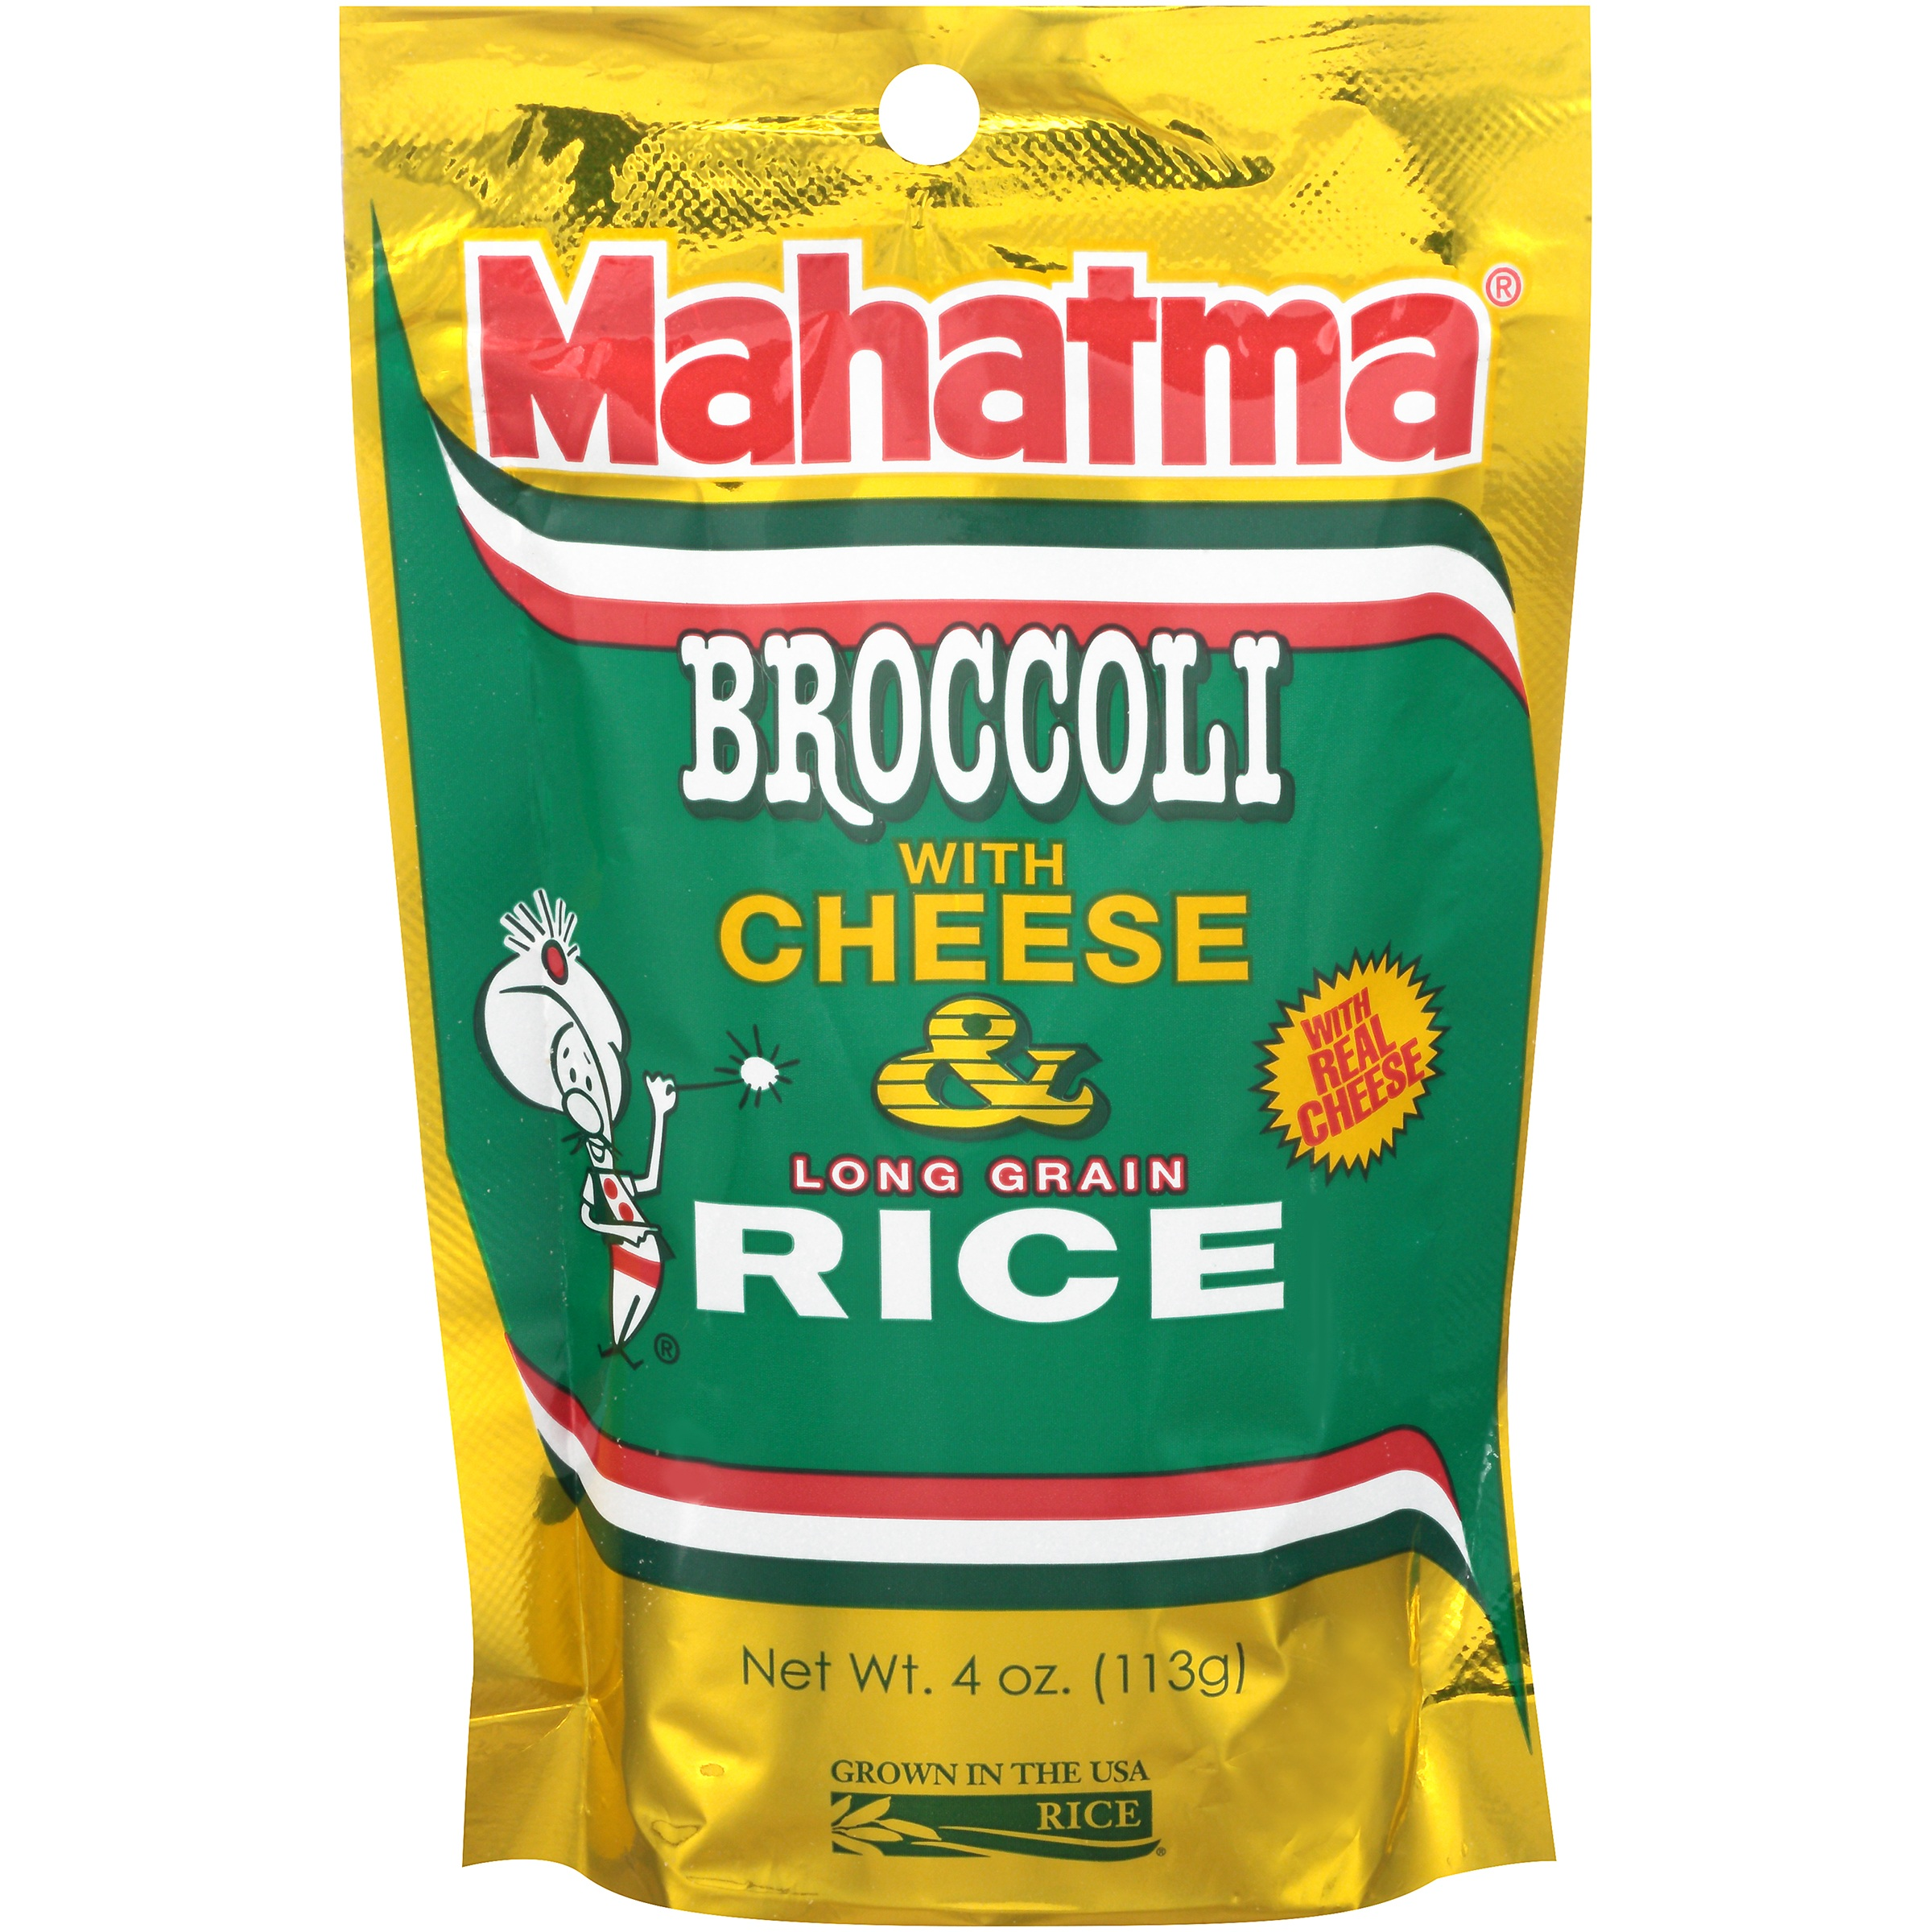 Mahatma® Broccoli with Cheese & Long Grain Rice 4 oz. Bag